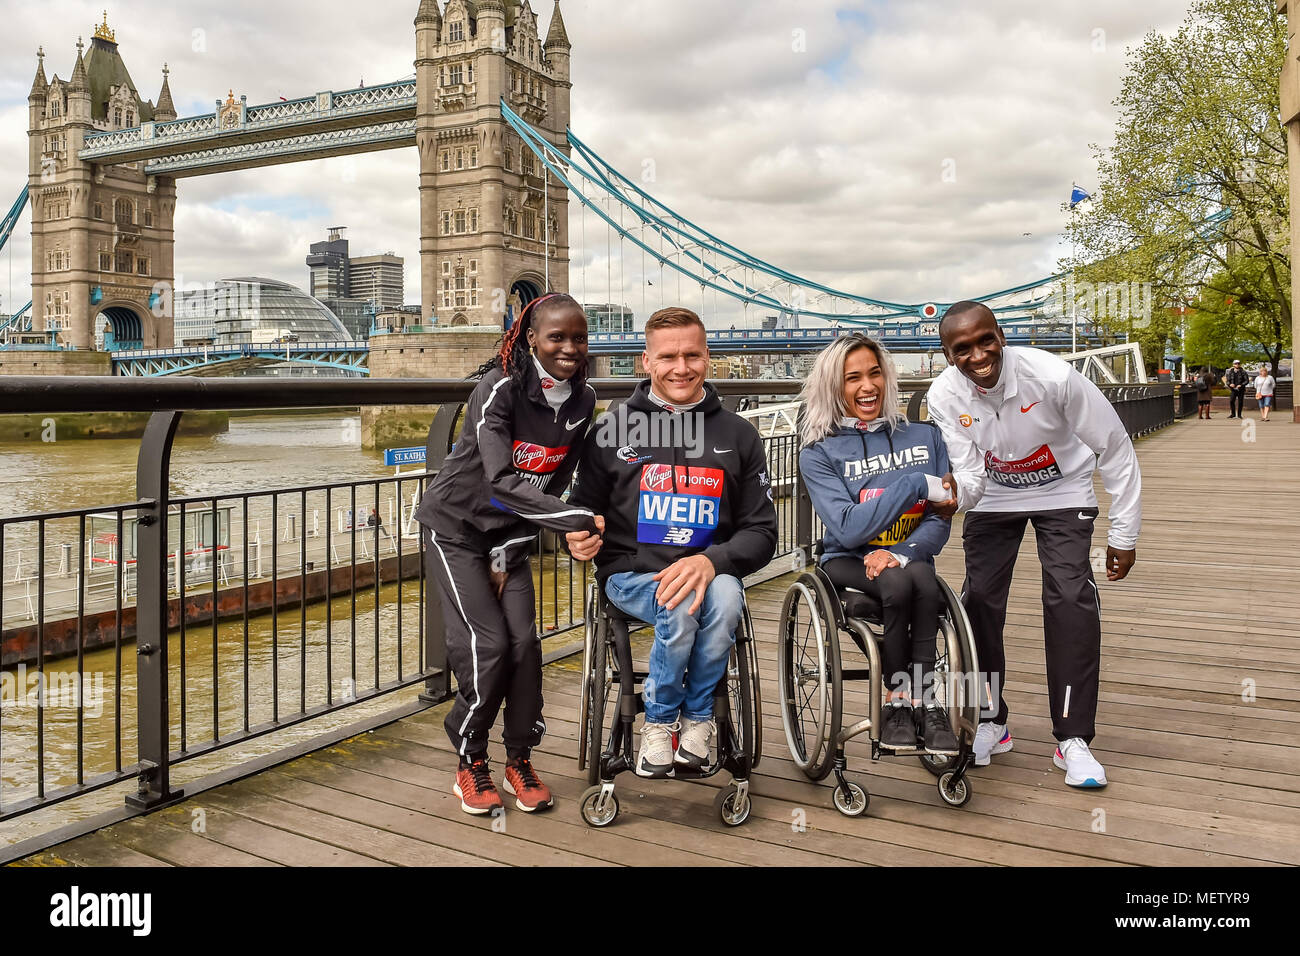 London, UK. 23rd April, 2018. Eliud Kipchoge (KEN), David Weir (GBR), Vivian Cheruiyot (KEN) and Madison de Rozario (AUS) at Winners presentation after the 2018 Virgin Money London Marathon on Monday, 23 April 2018. London, England. Credit: Taka Wu/Alamy Live News - Stock Image